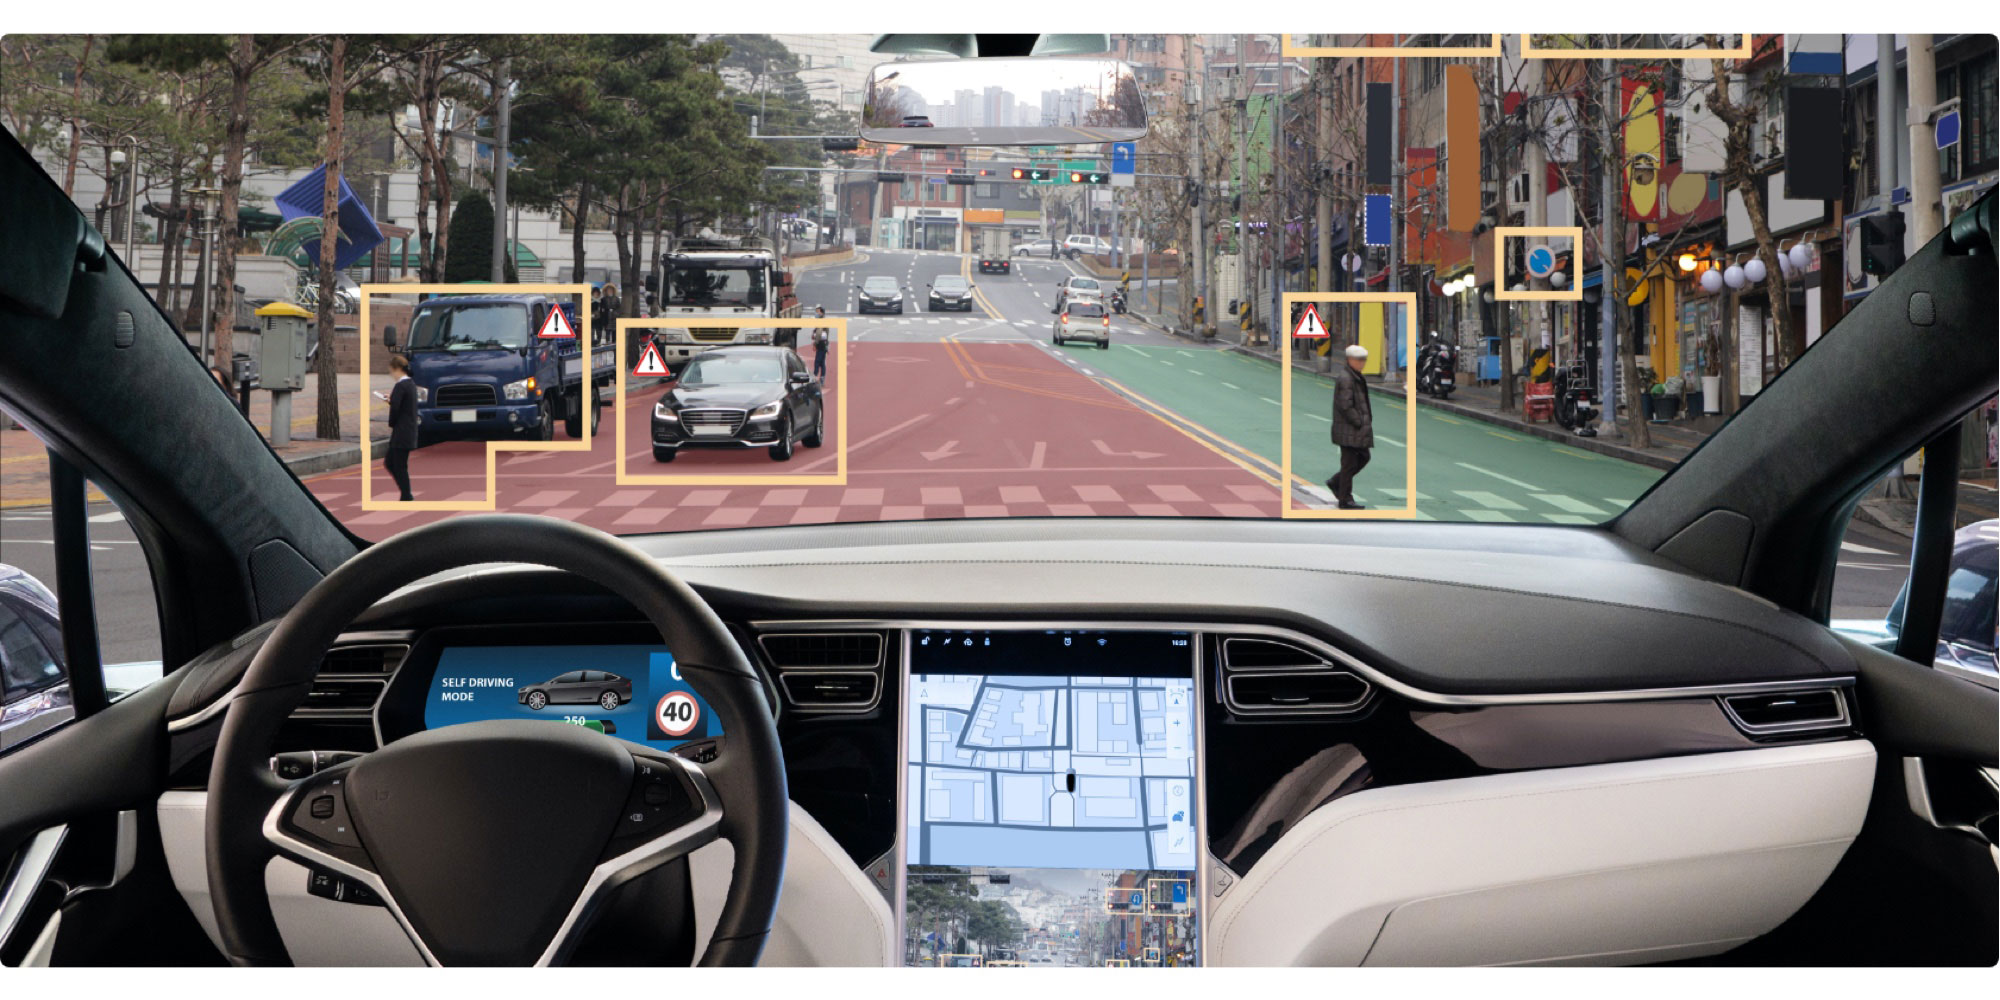 View from an autonomous vehicle